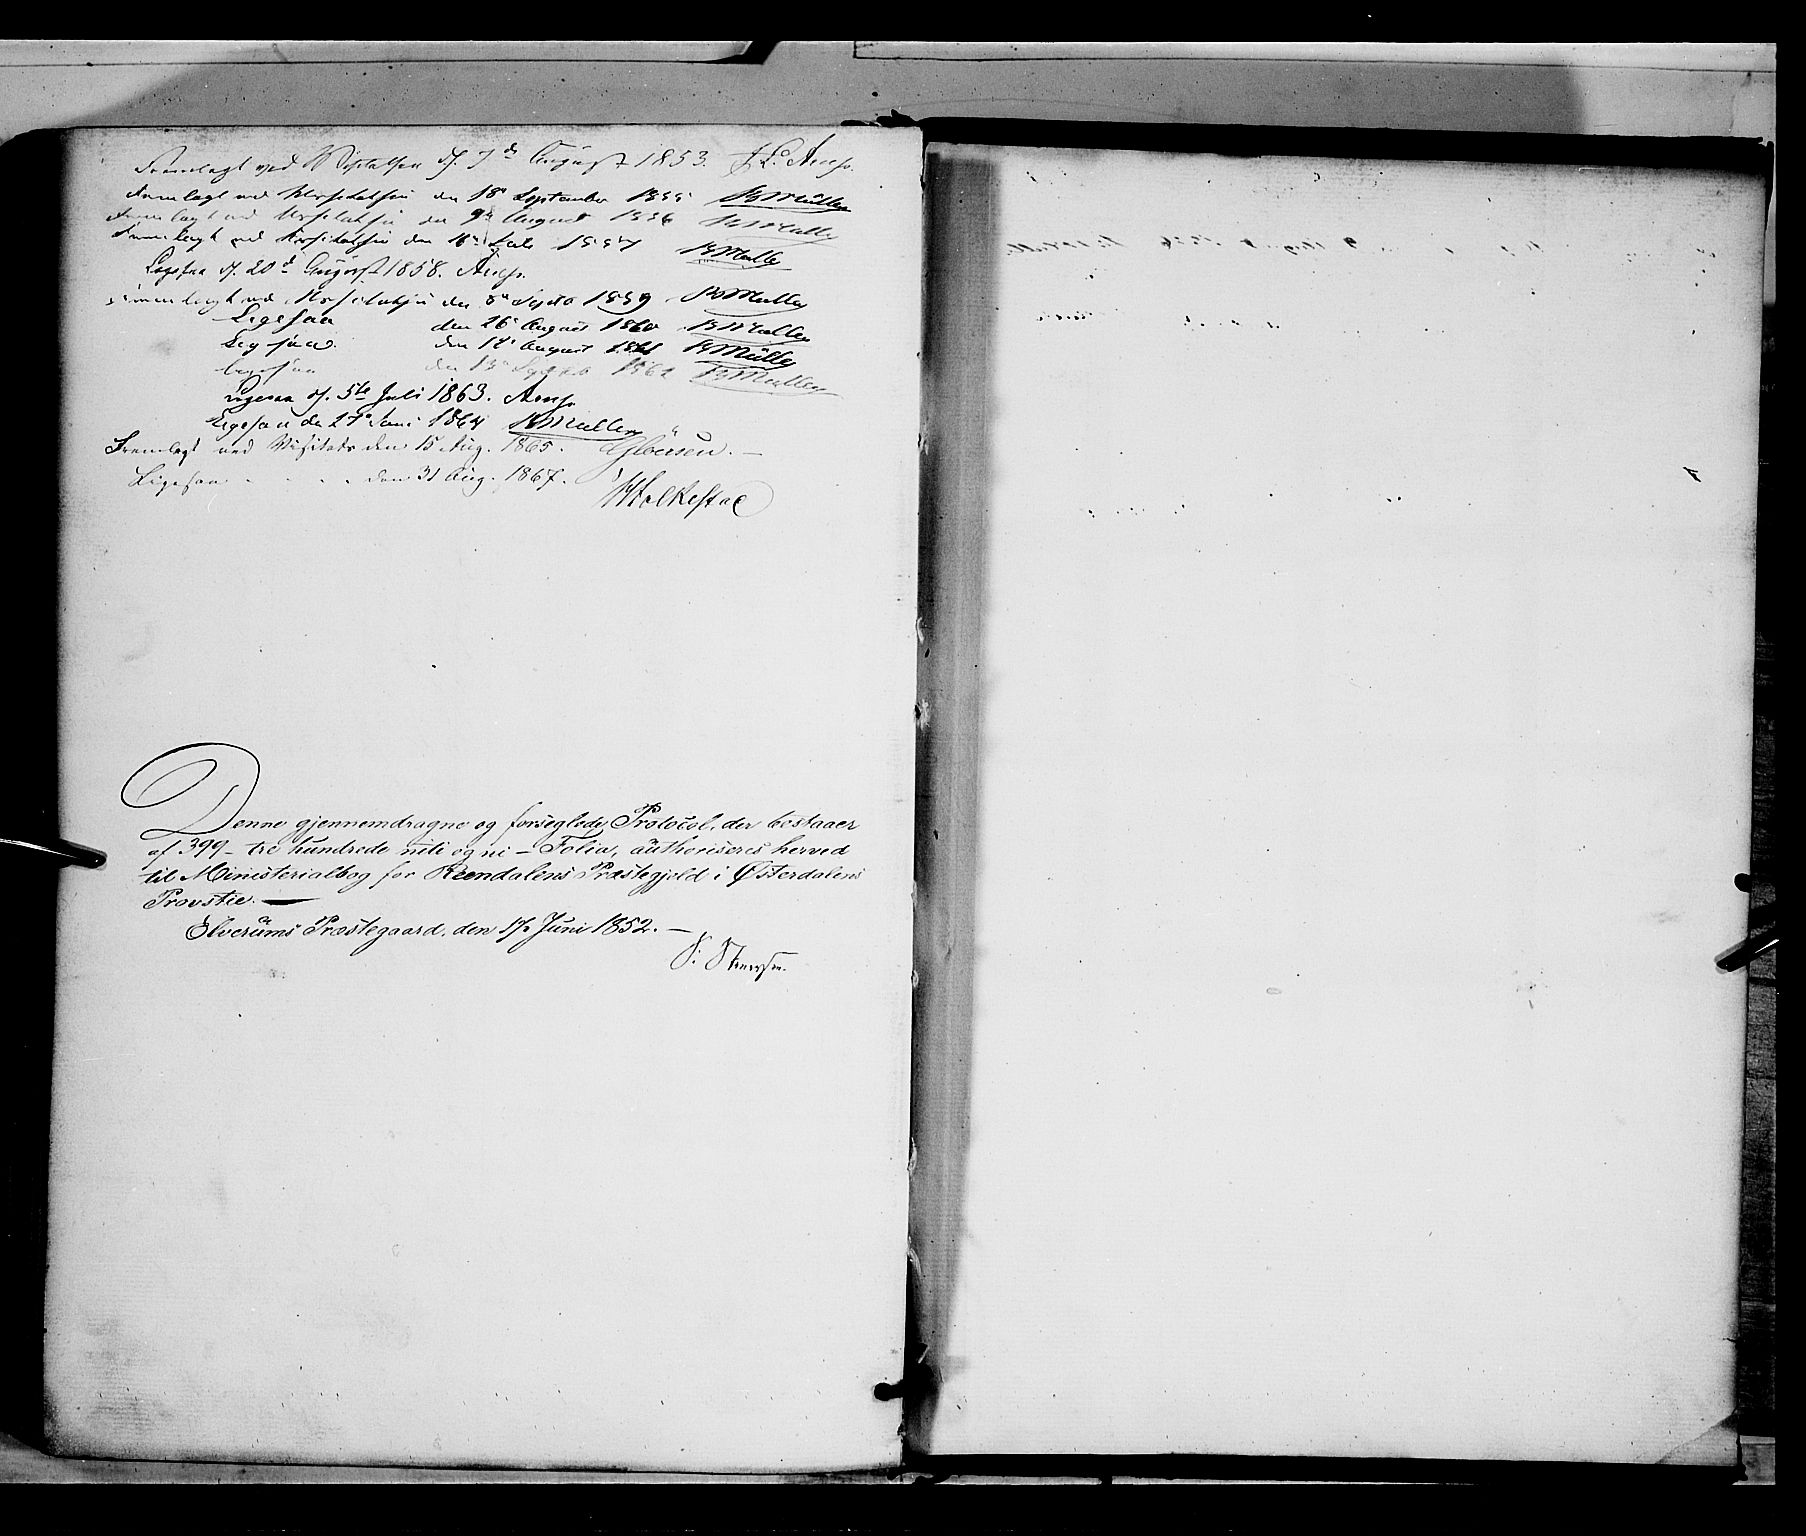 SAH, Rendalen prestekontor, H/Ha/Haa/L0005: Parish register (official) no. 5, 1853-1866